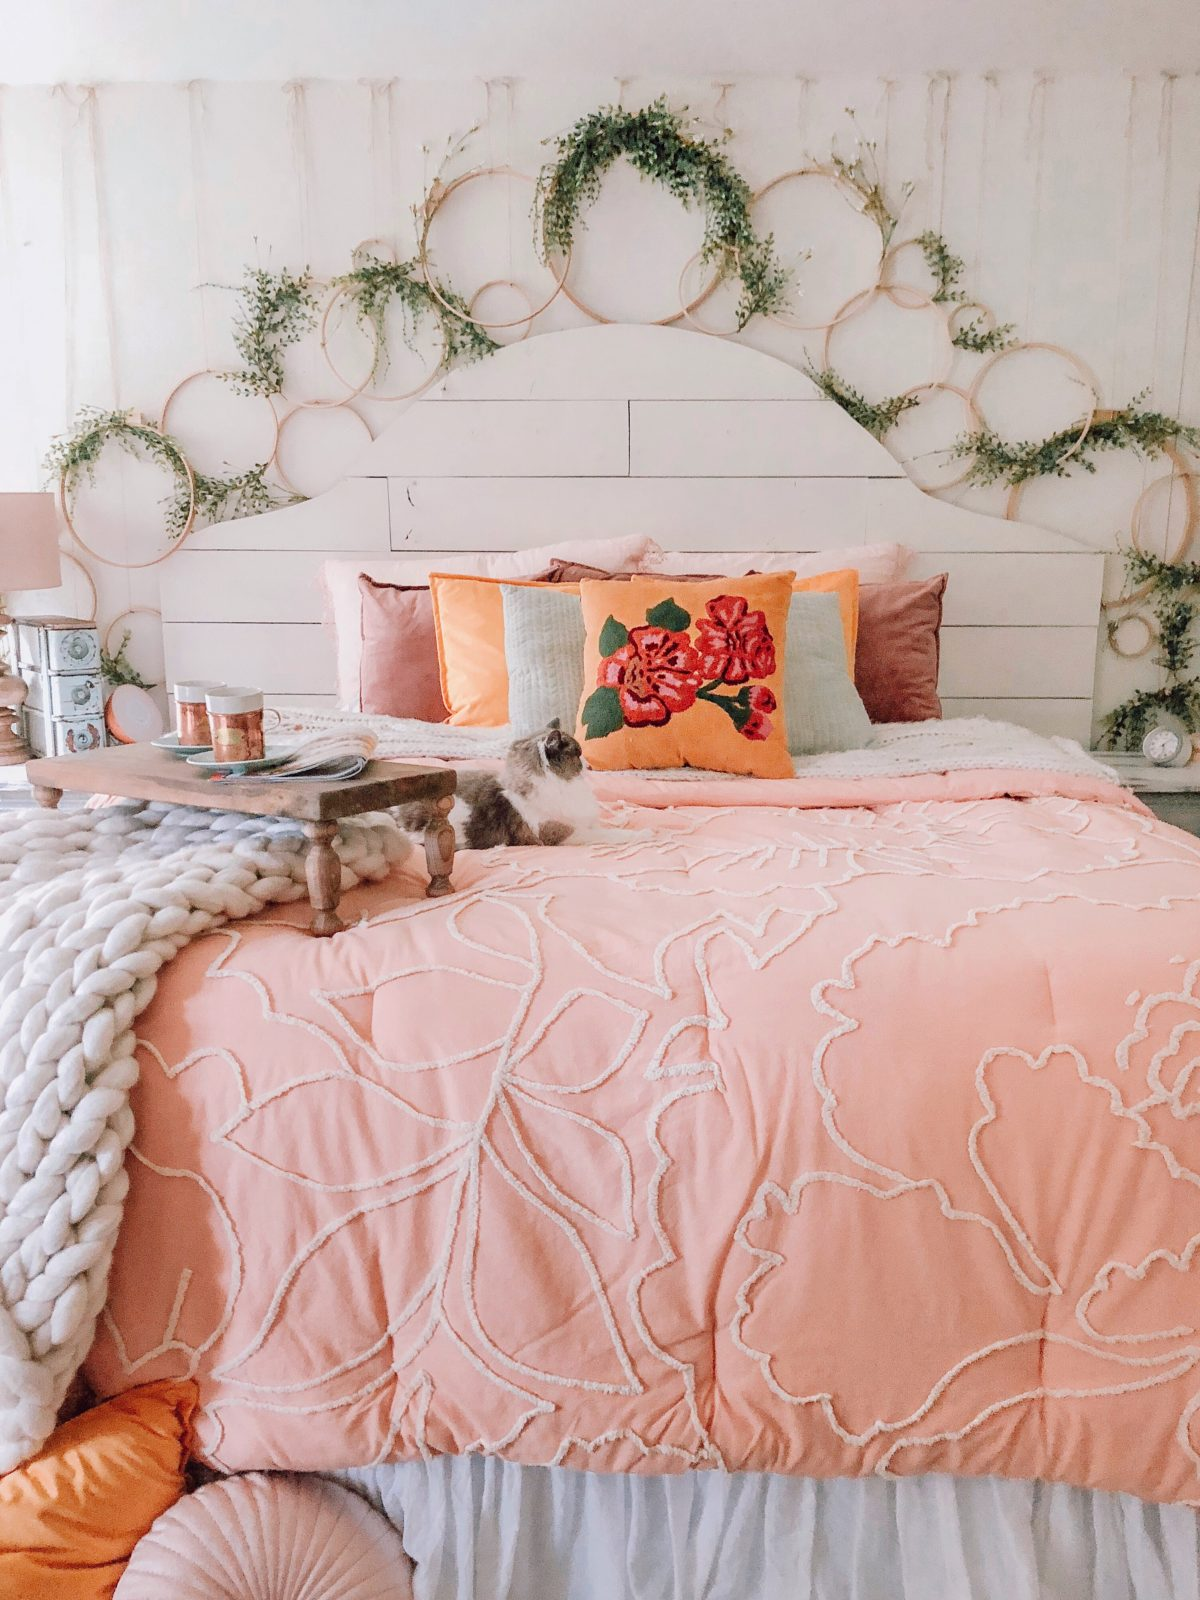 this bedroom is full of farmhouse style diys from the pallet headboard to the gorgeous hoop decor and wall detail